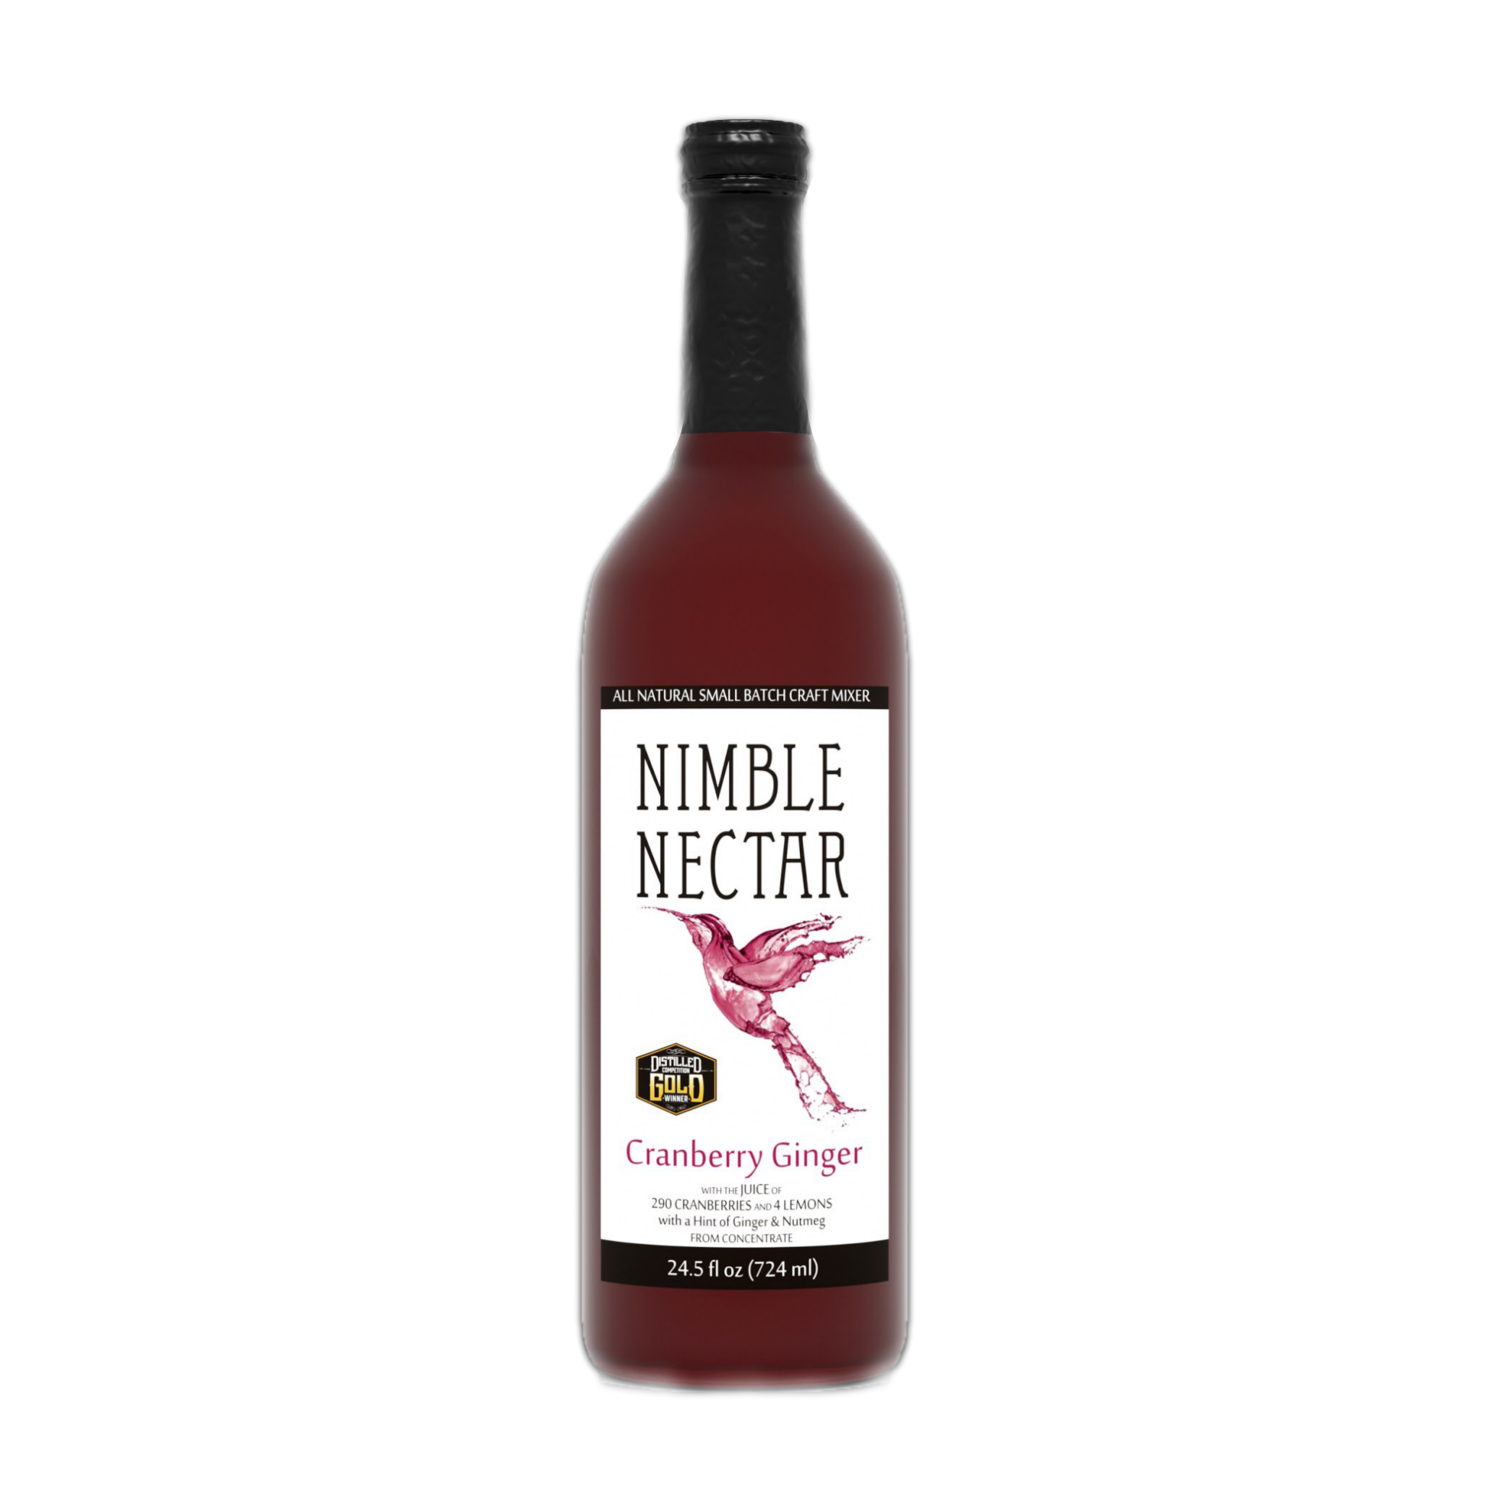 Nimble Nectar - Cranberry Ginger